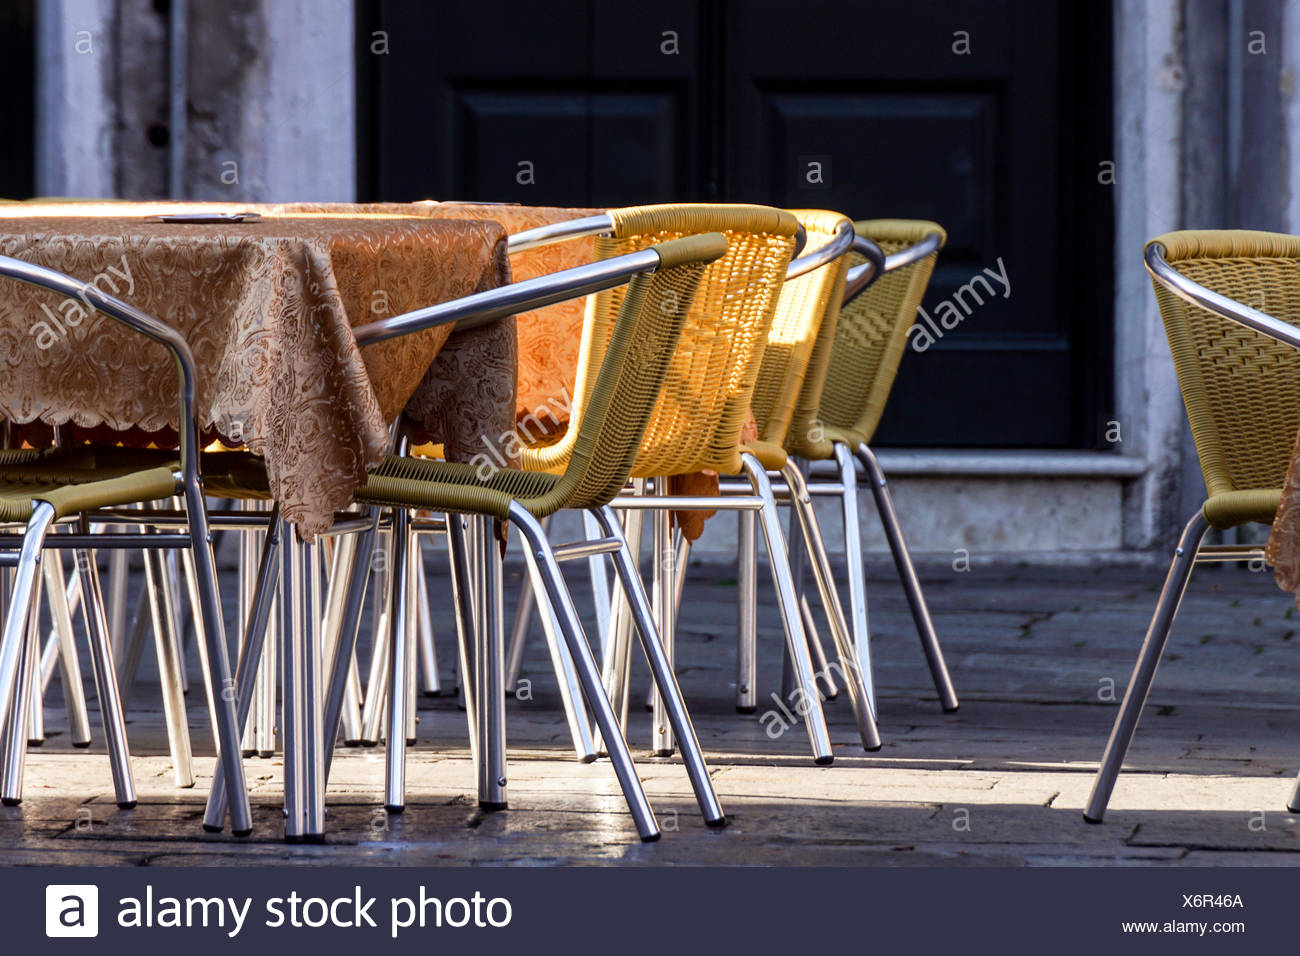 Wrought iron table and chairs outside sidewalk cafe waiting for customers to sit and dine. & Wrought iron table and chairs outside sidewalk cafe waiting for ...